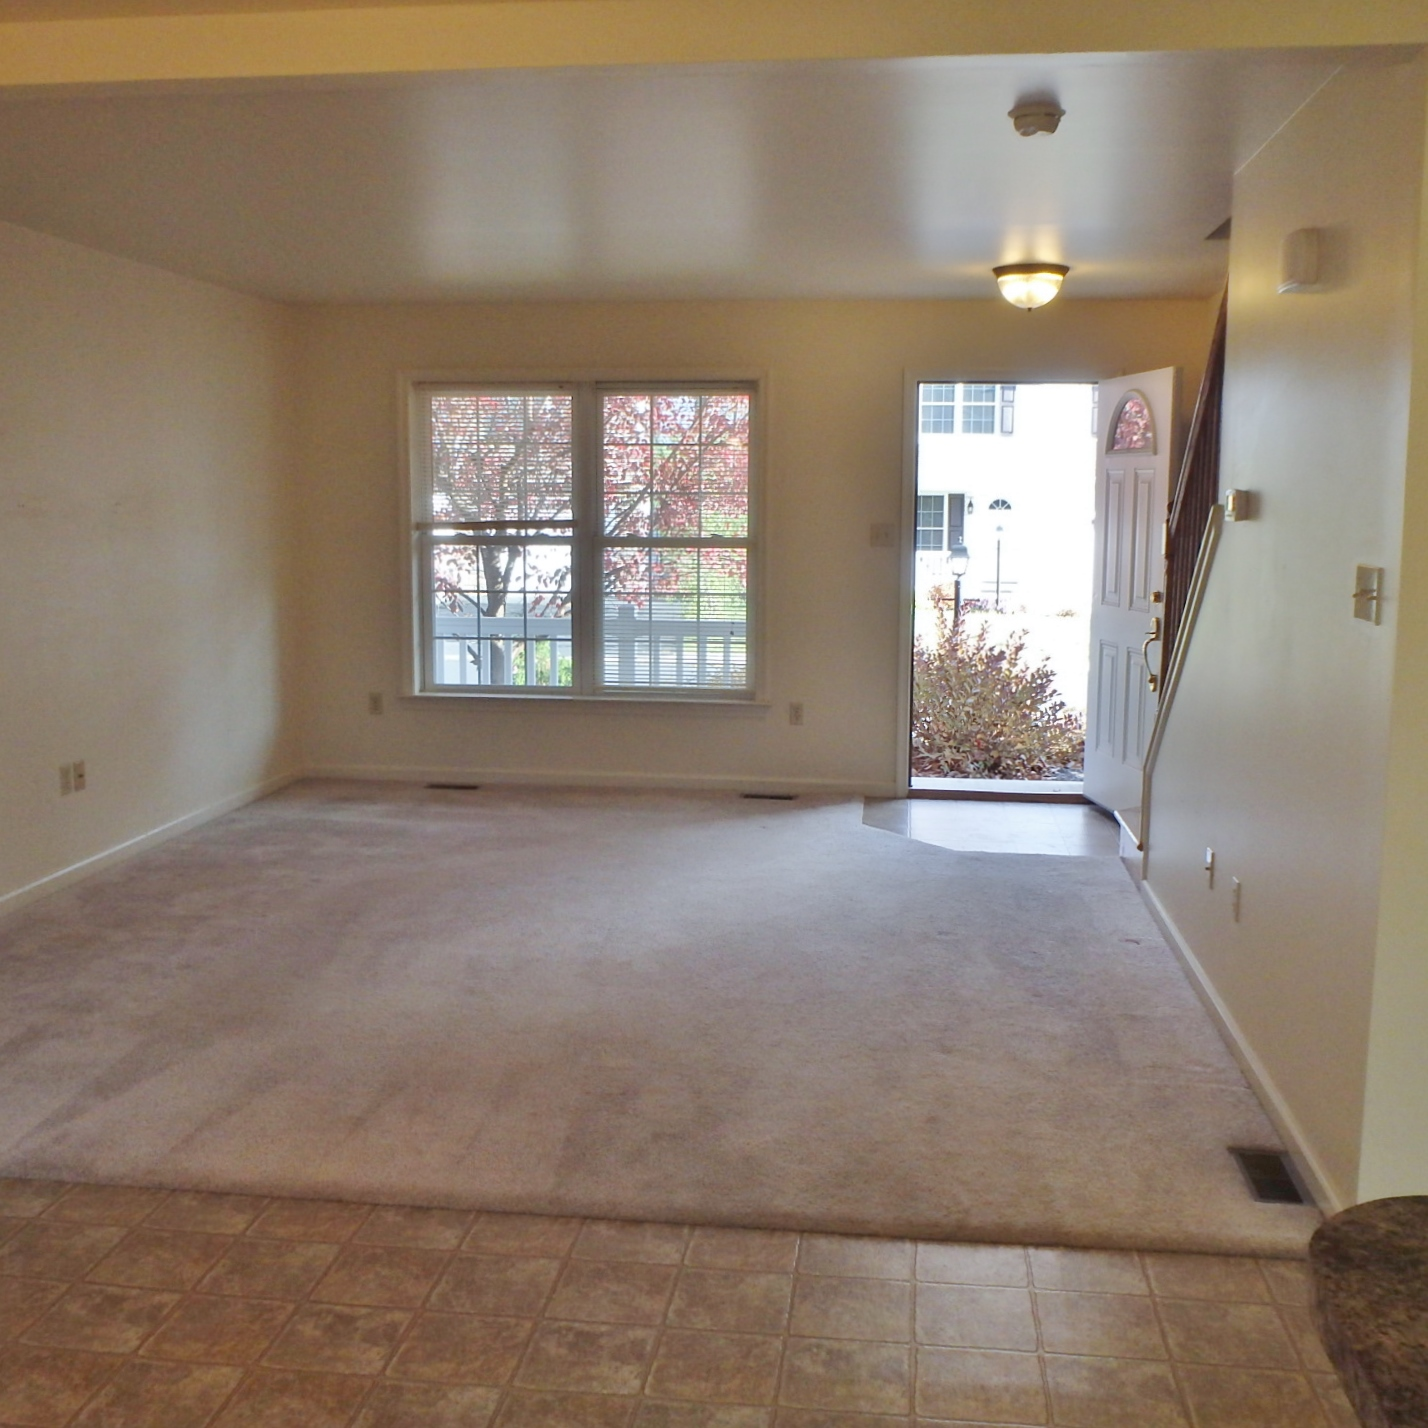 Living room photo of the 3-bedroom house for rent at 112 McKivison Court.